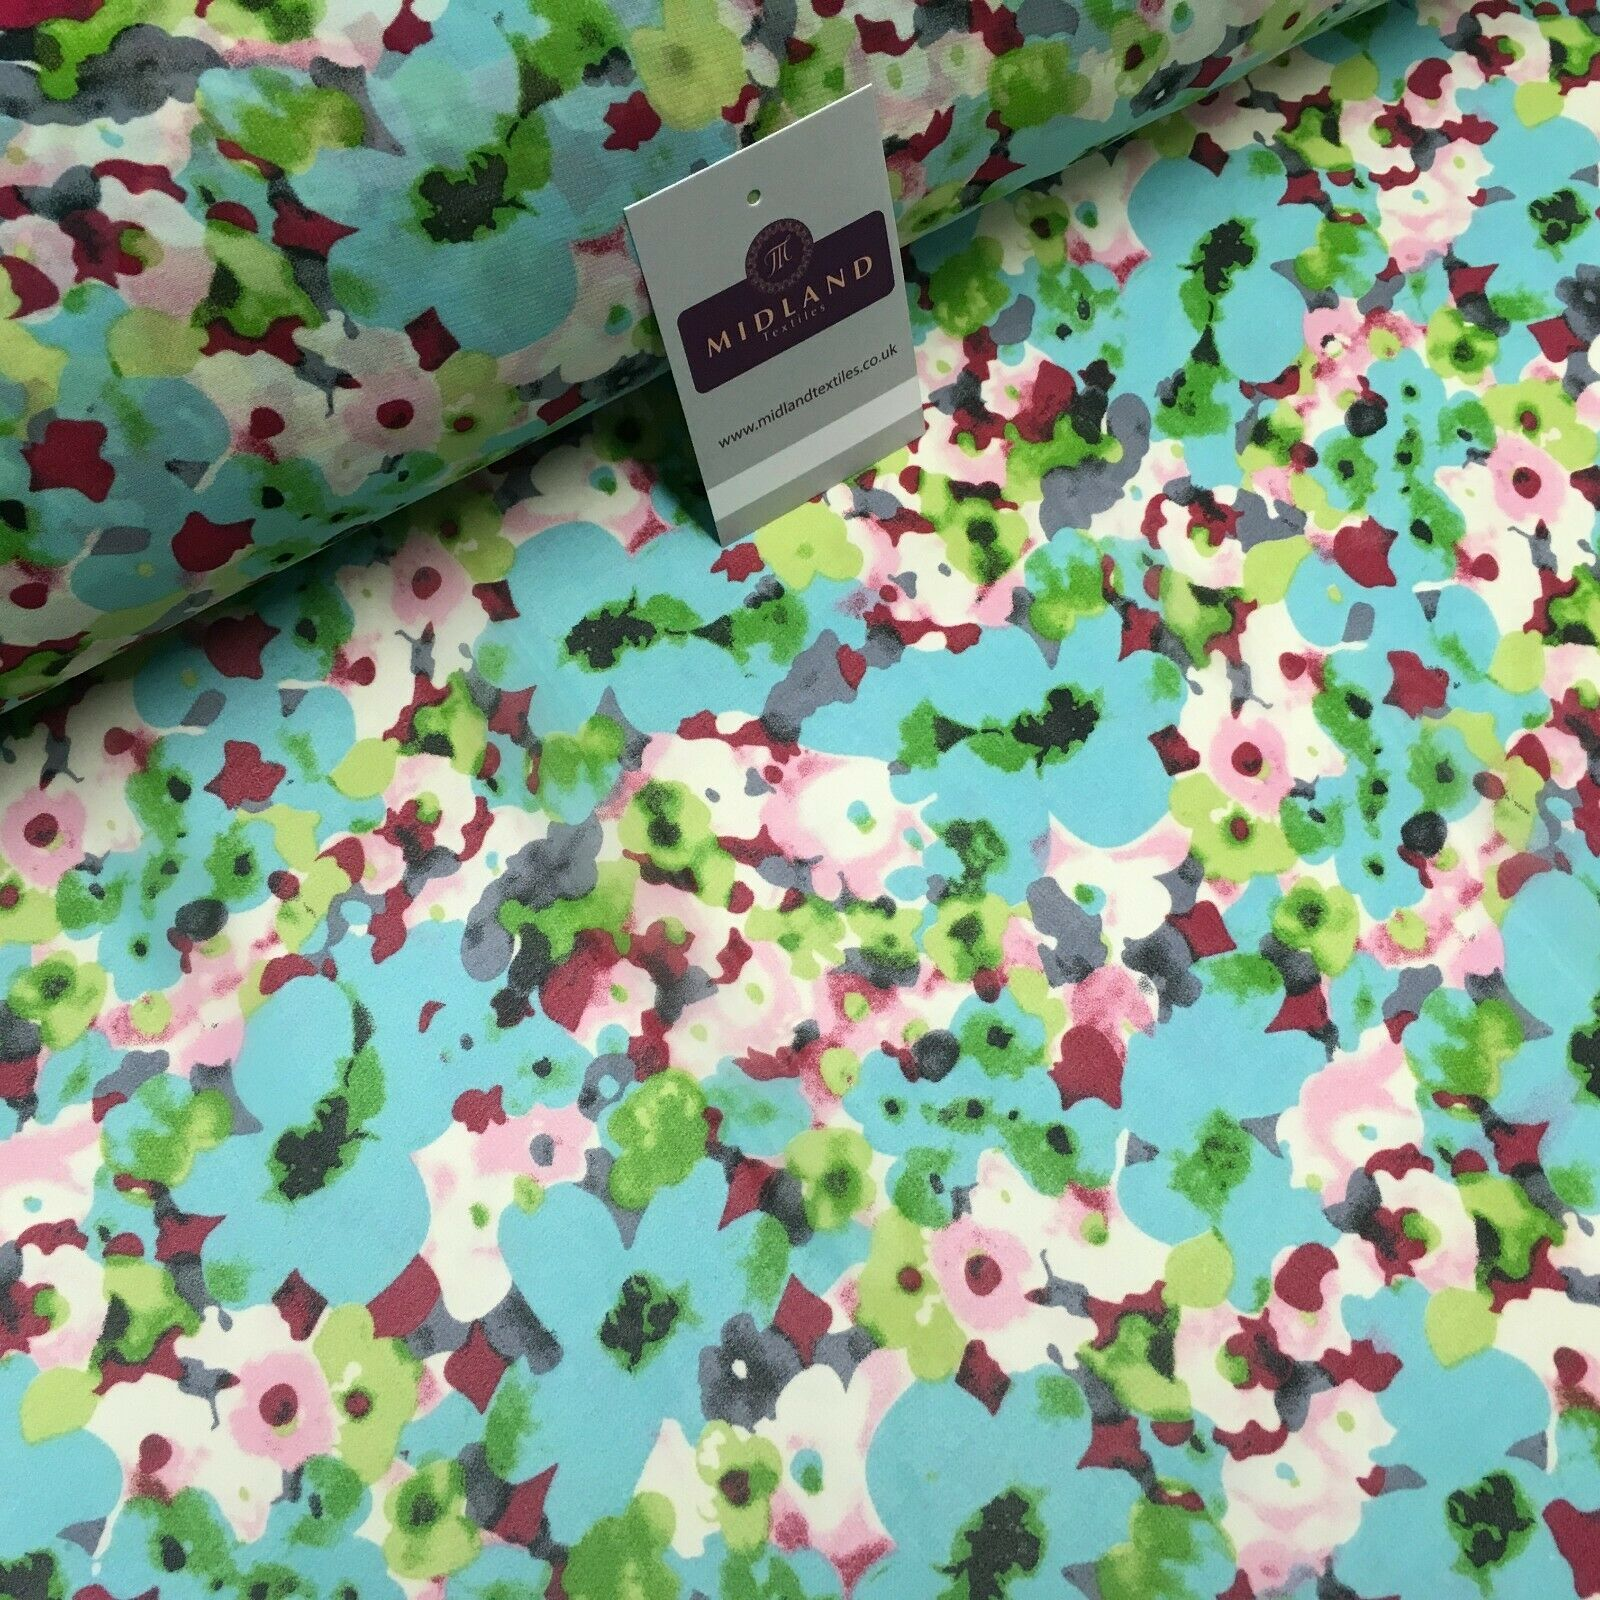 Aqua Green Floral Printed Crepe chiffon Dress Fabric 150 cm MK1190-30 Mtex